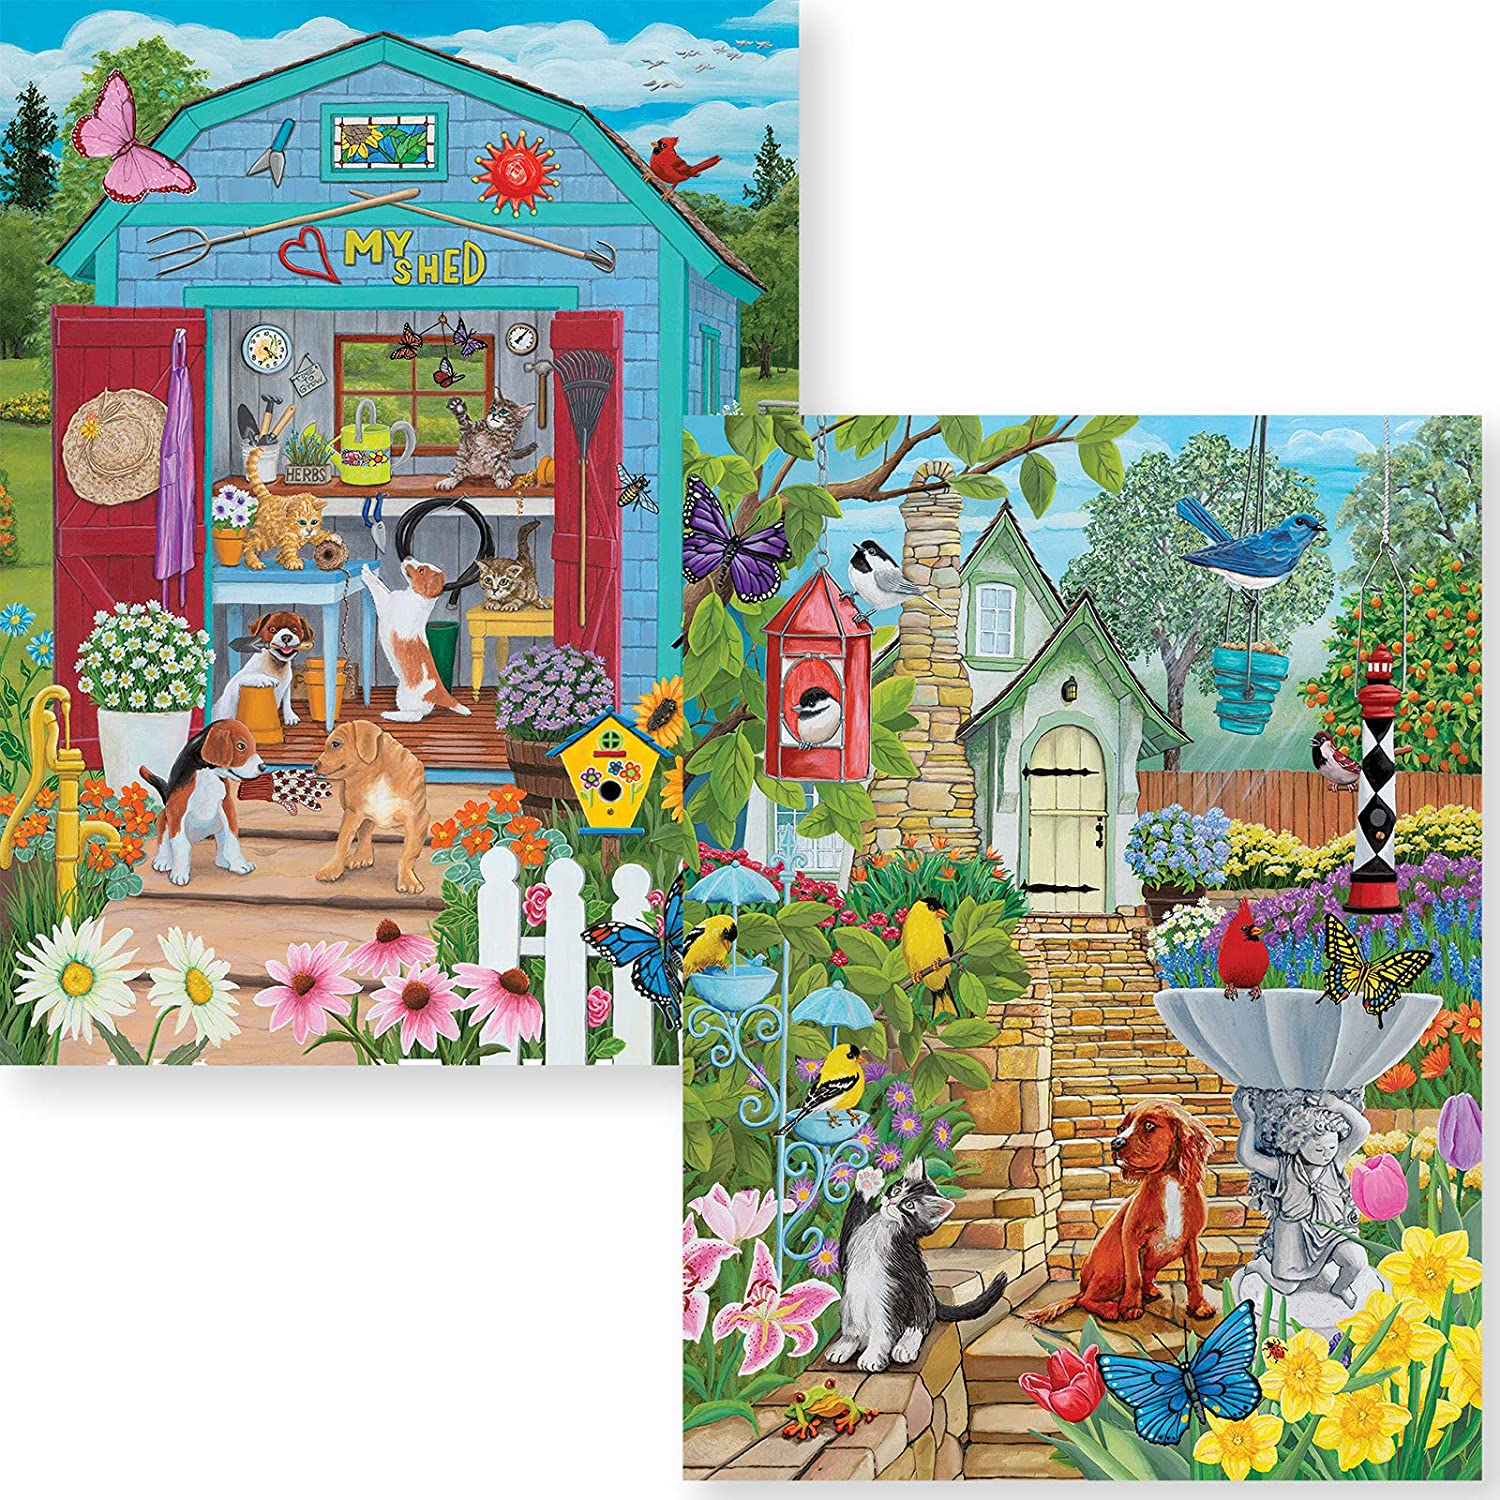 Bits and Pieces - Value Set of Two (2) 1000 Piece Jigsaw Puzzles for Adults - Each Puzzle Measures 20